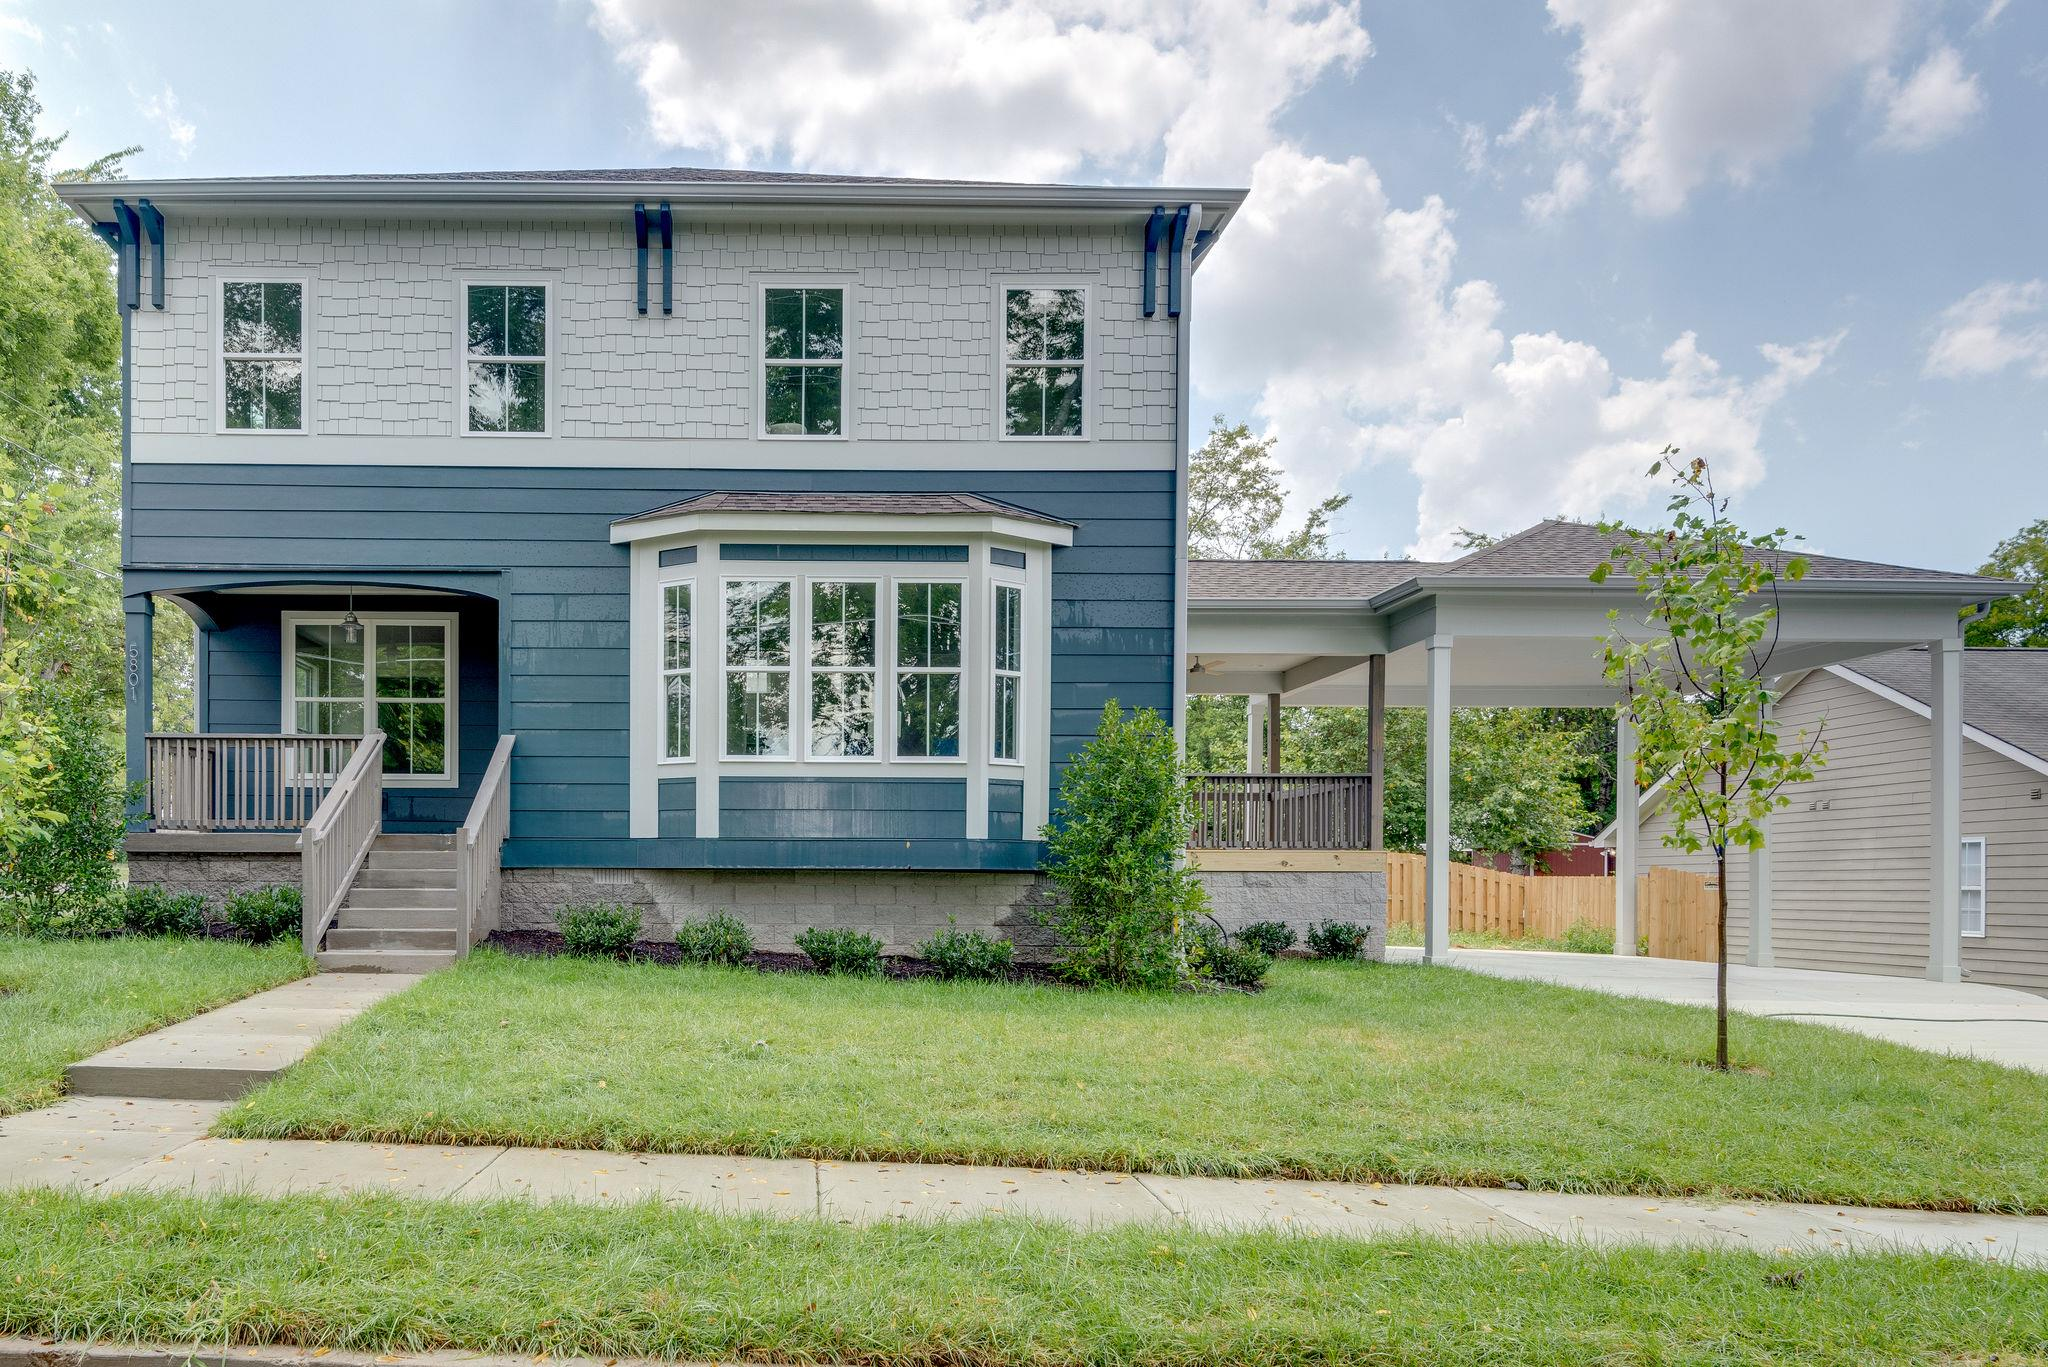 5801 Leslie Ave, Nashville, TN 37209 - Nashville, TN real estate listing